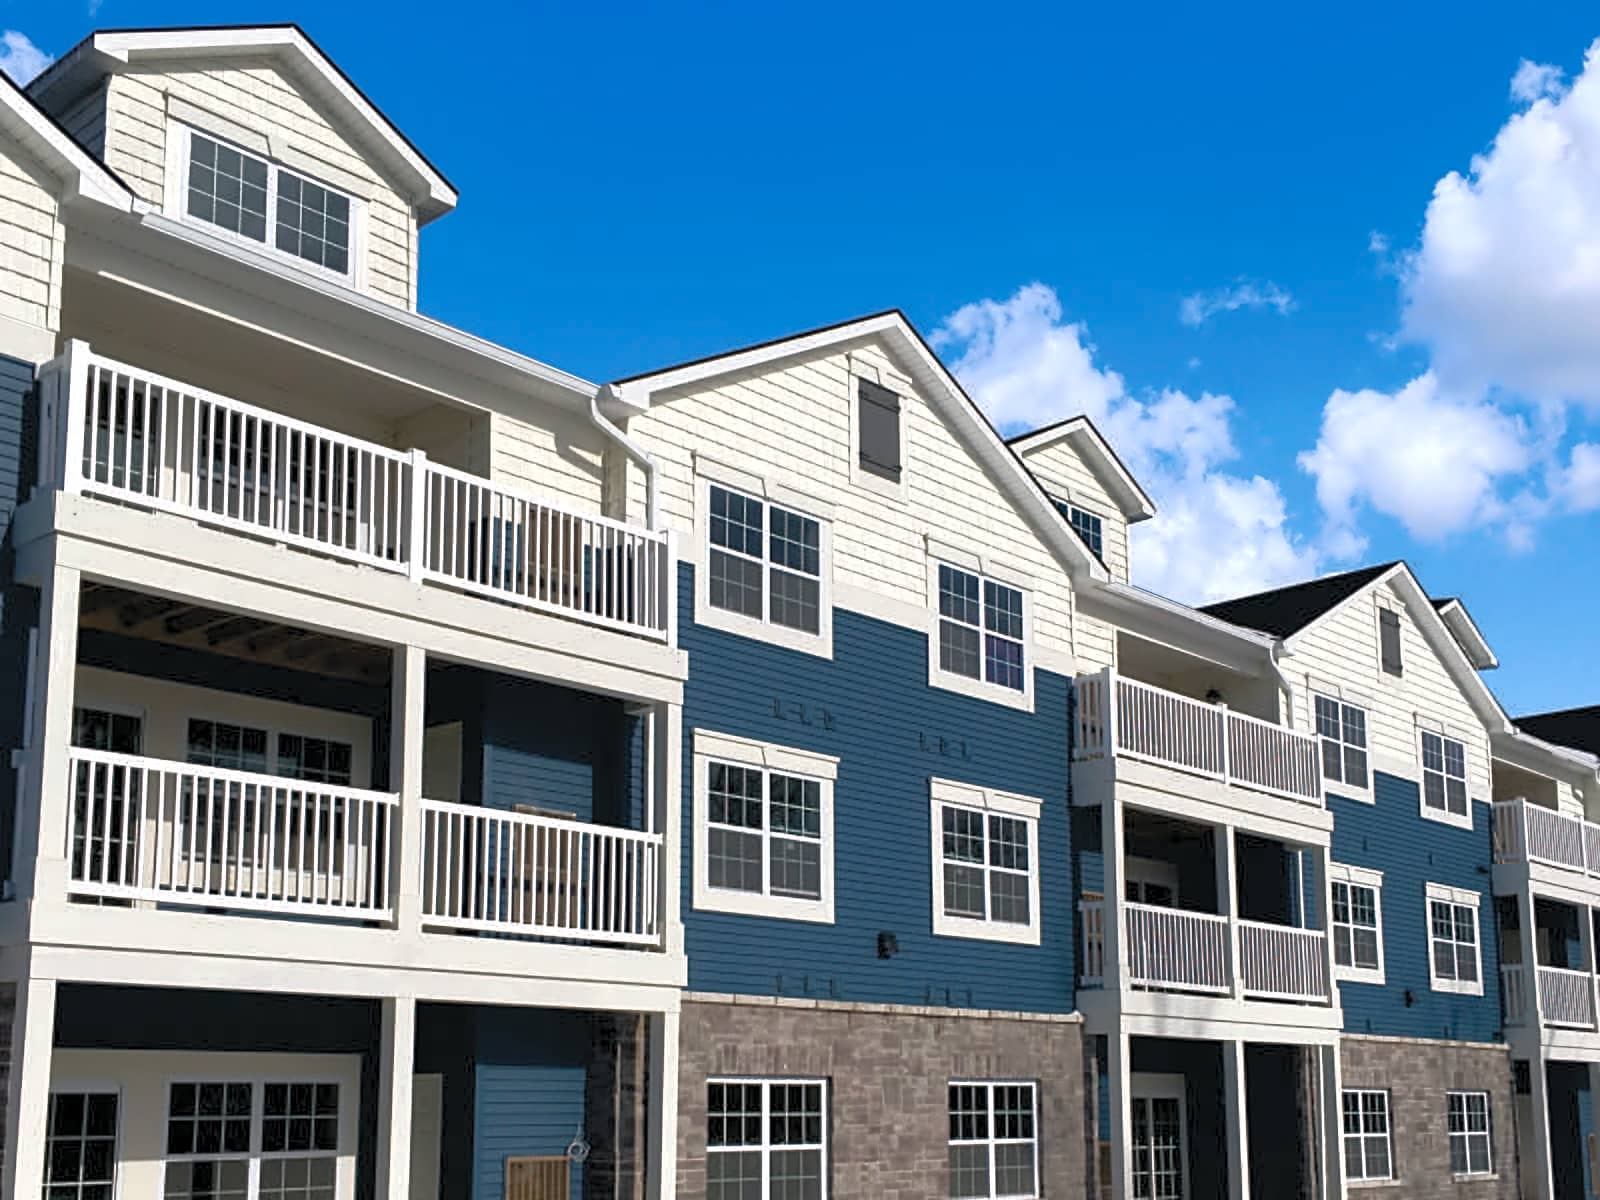 Apartments Near Brockport The Residences at Clarkson for Brockport Students in Brockport, NY